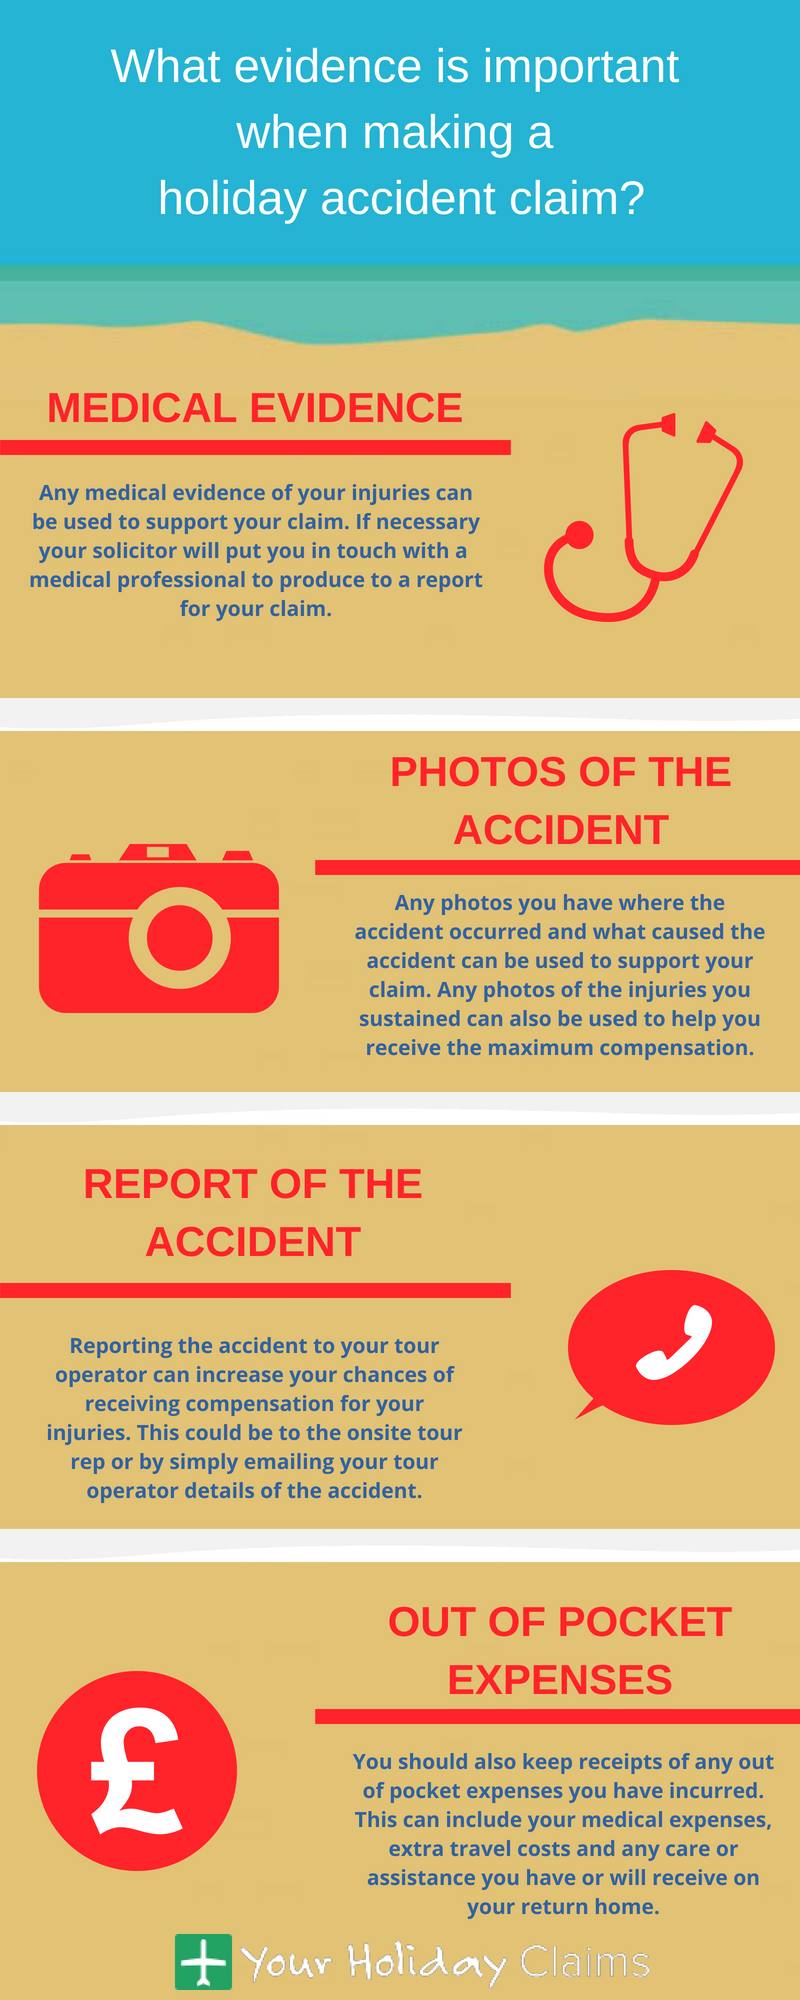 Infographic explaining important evidence for a holiday accident claim